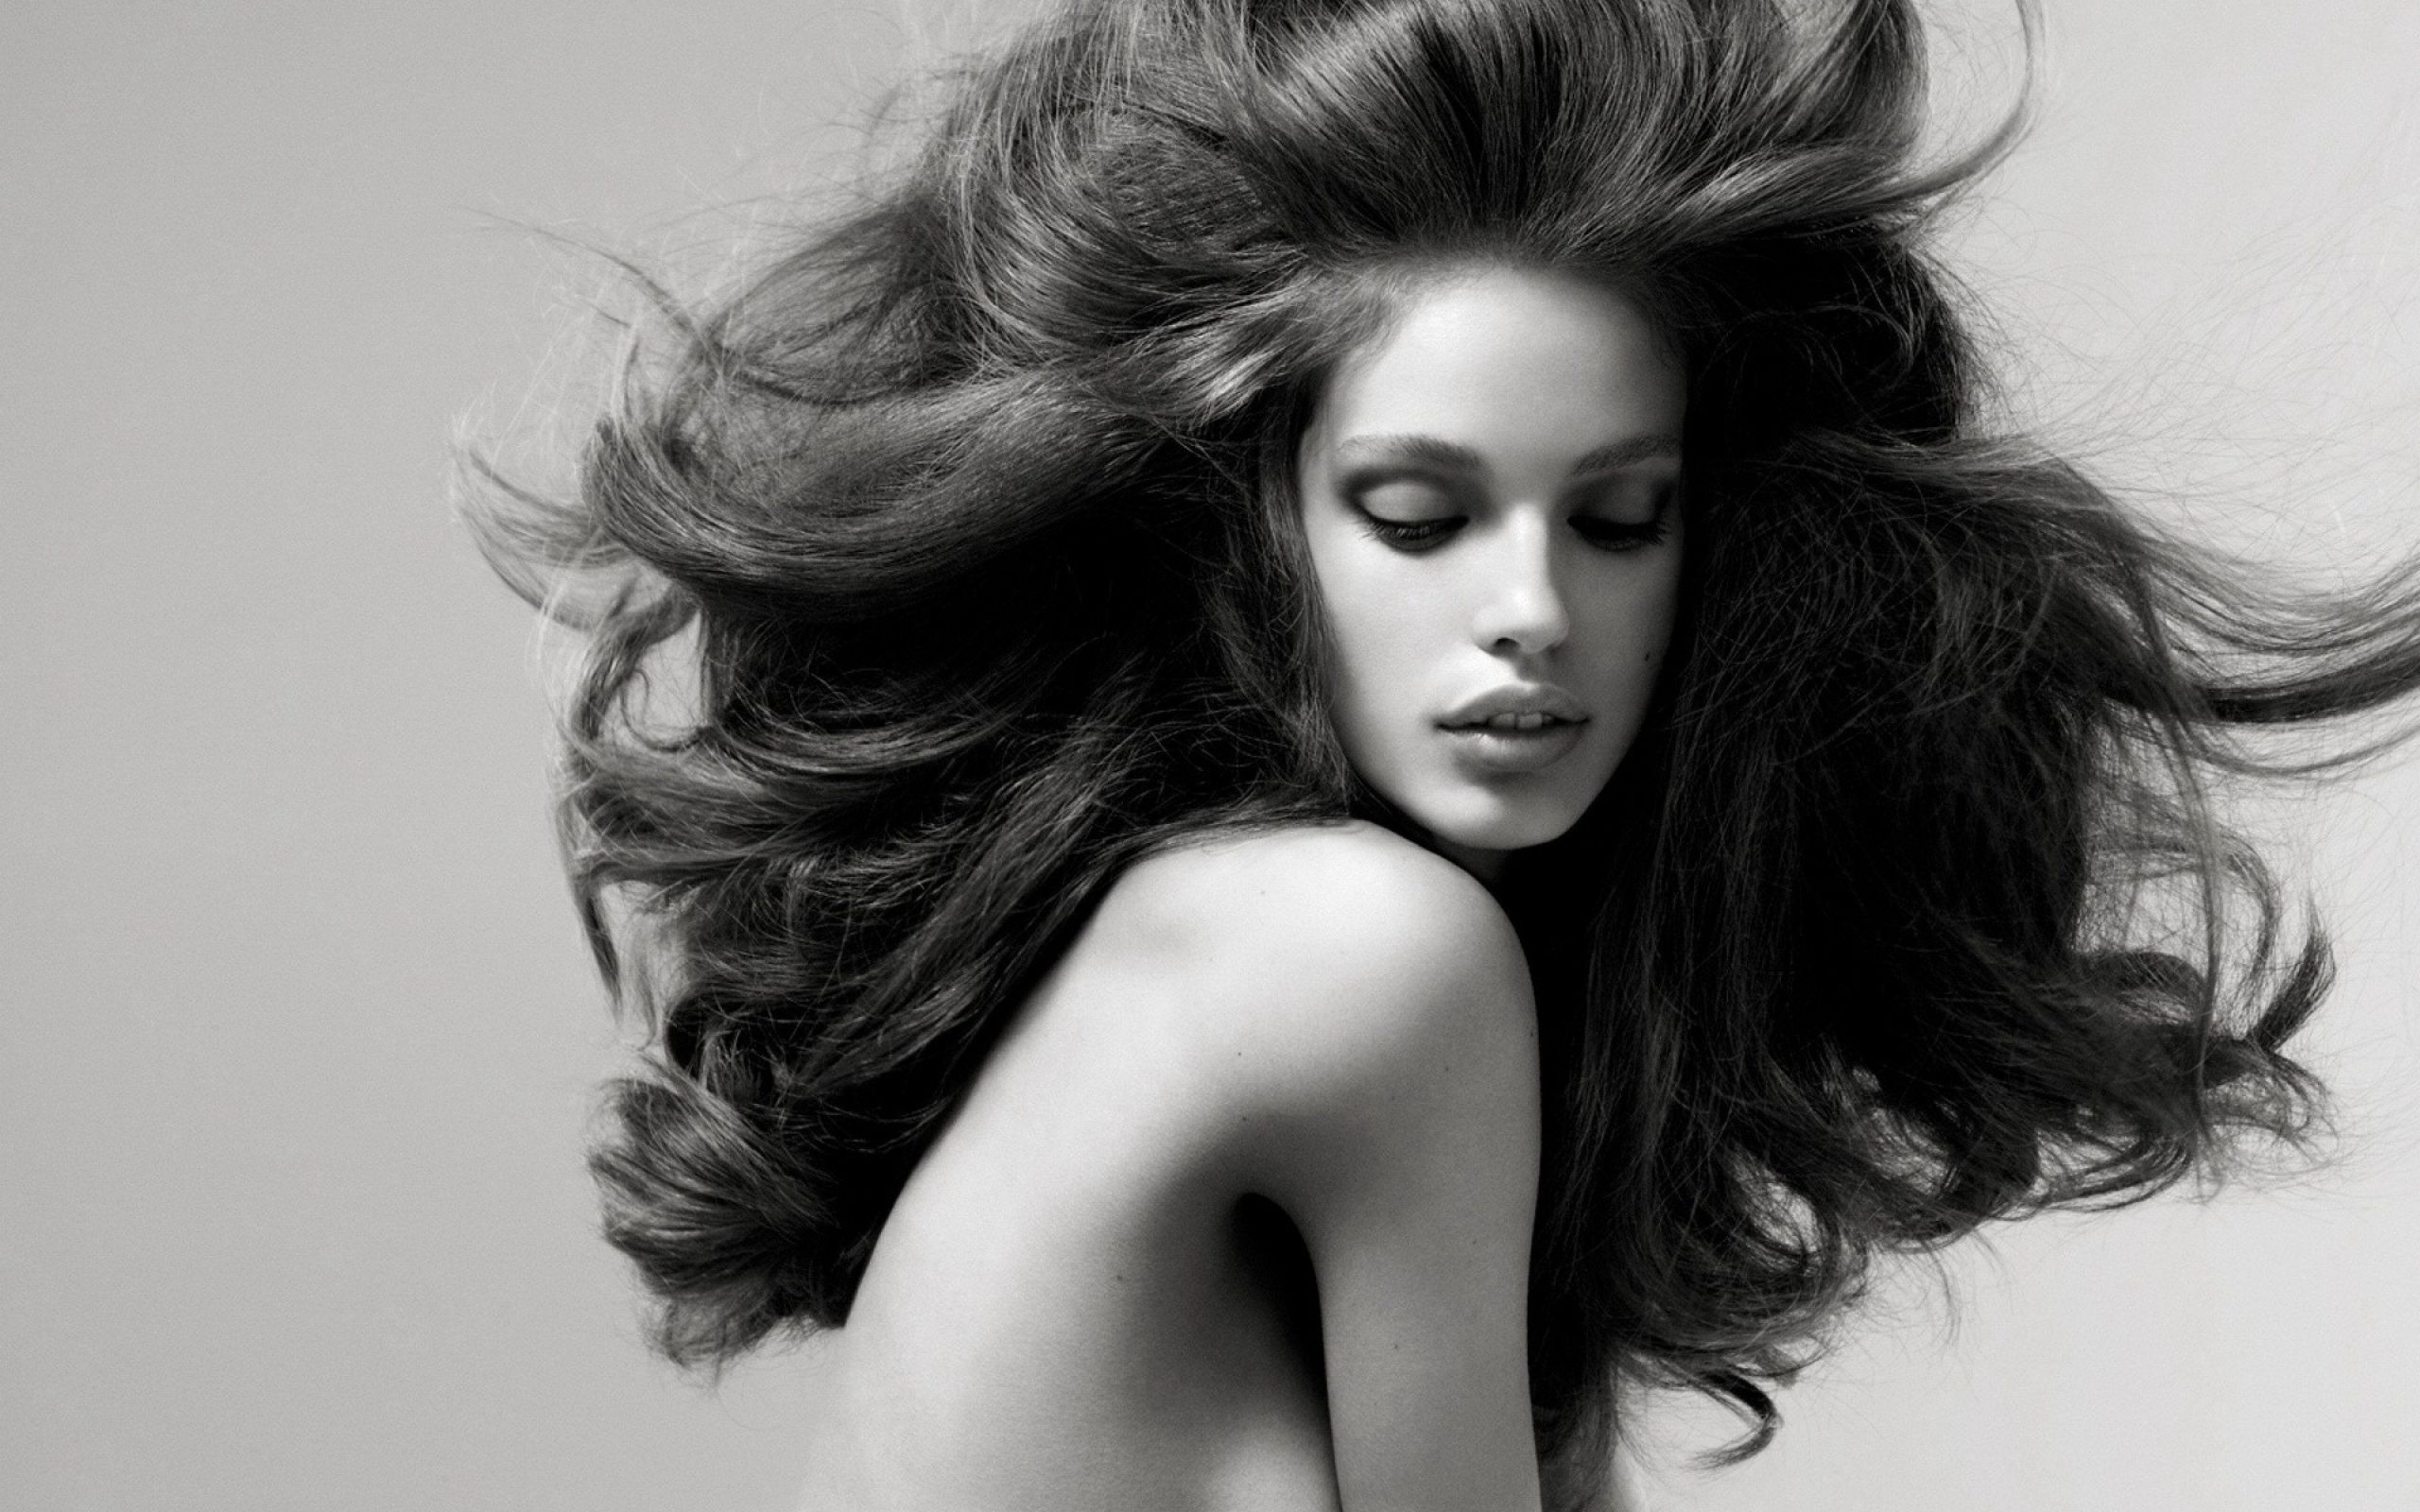 2560x1600 Emily Didonato Full HD Wallpaper and Background Image | 2560x1600 ...